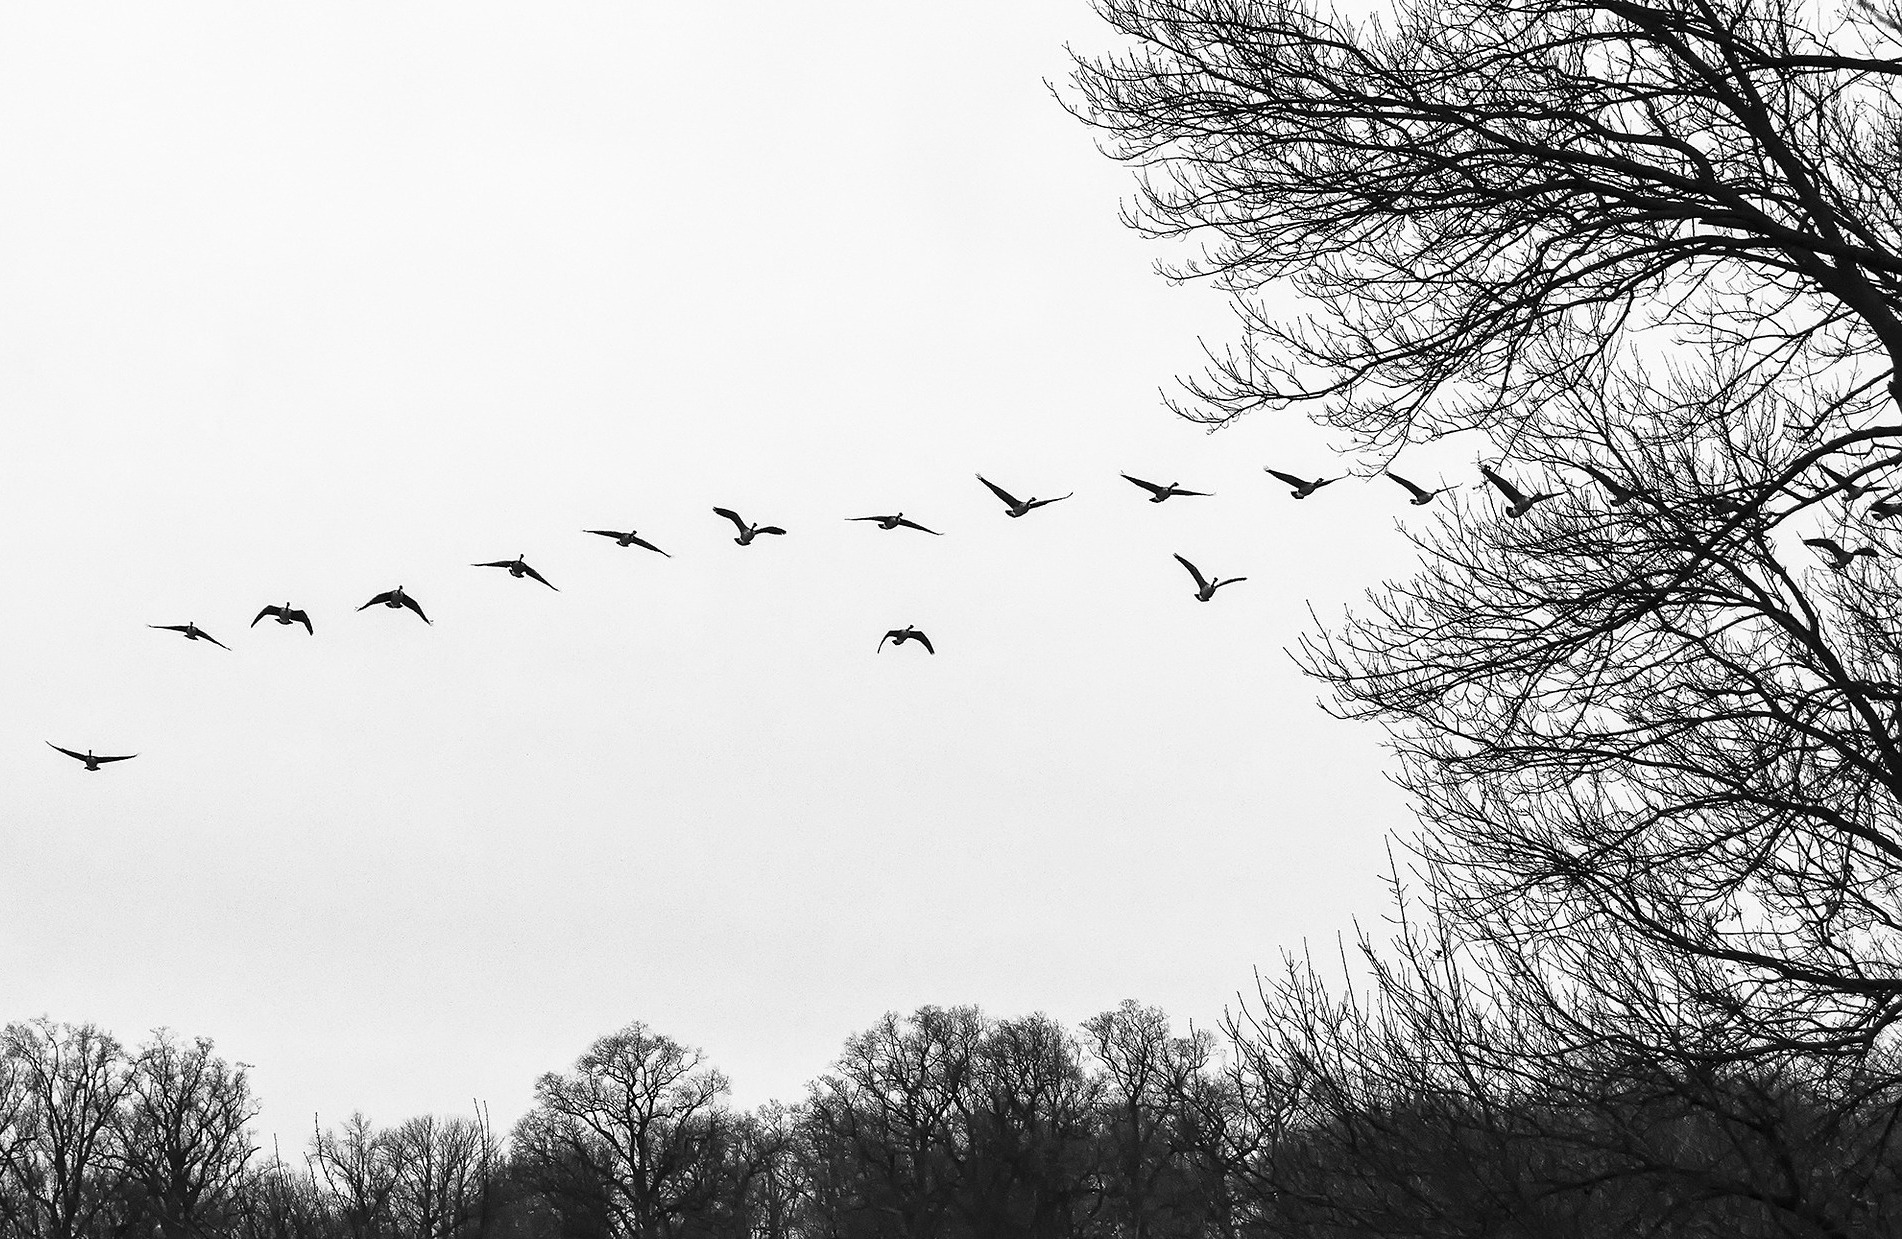 Geese lift off from the field and move across the sky.